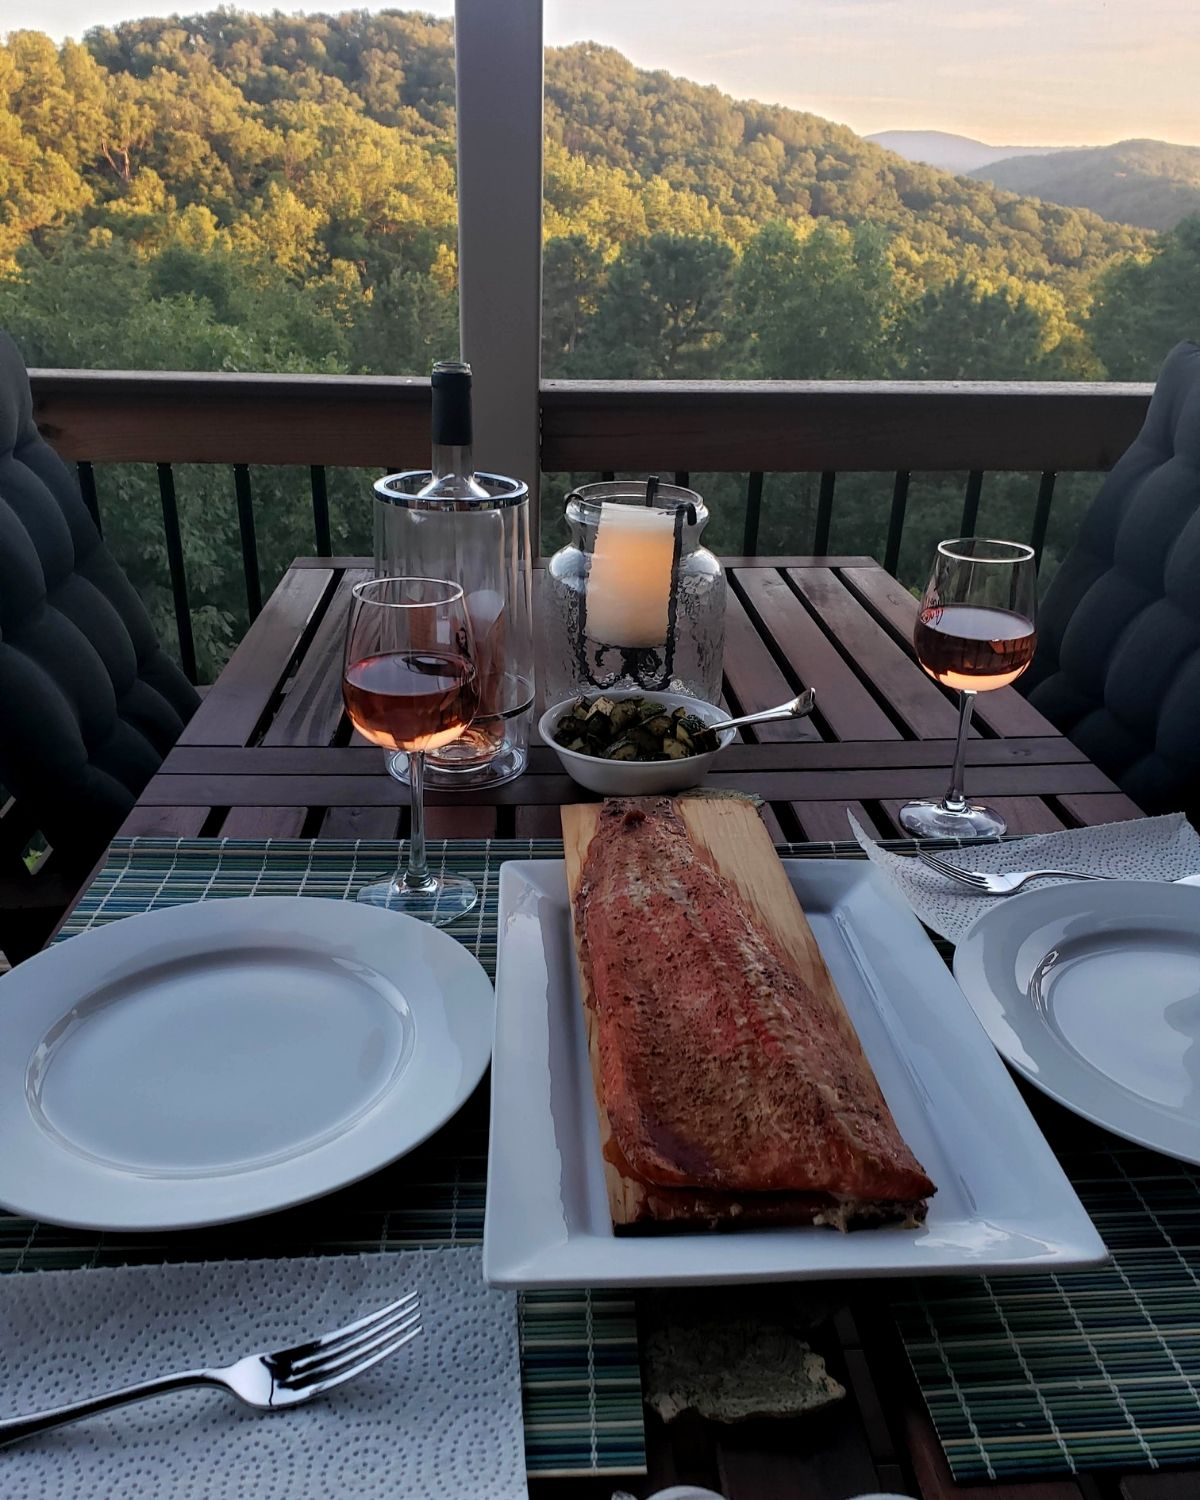 Monthly edition of Field Trip Friday about our visit to Aspen Dale Winery and then home for Cedar Plank Smoked Salmon. A Northern VA Food & Beverage Review!